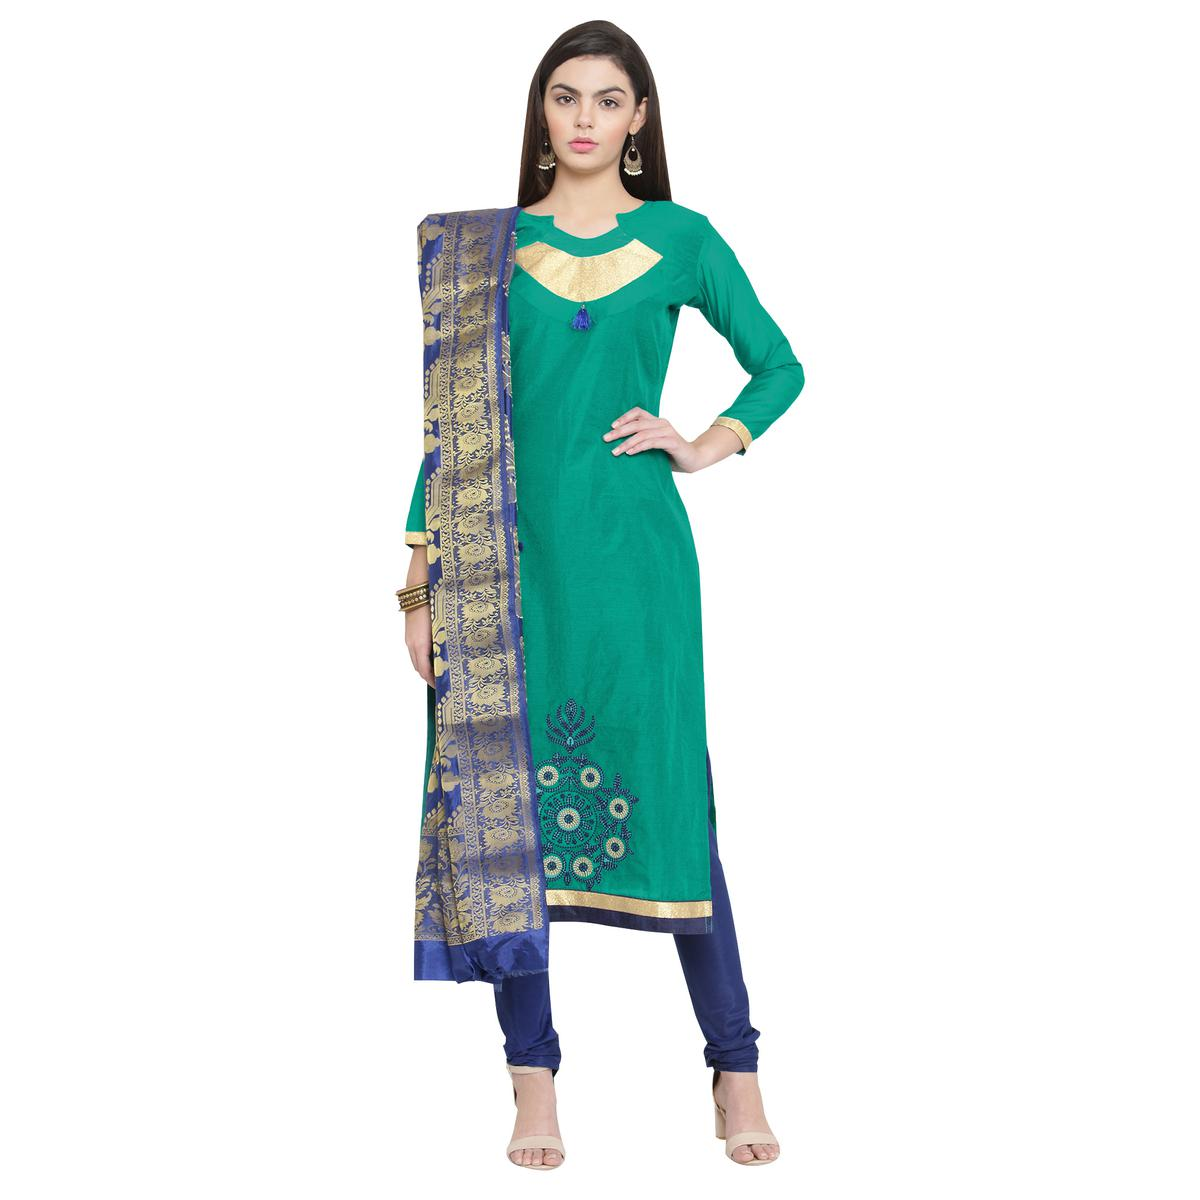 Lovely Turquoise Green Colored Embroidered Cotton Dress Material With Banarasi Silk Dupatta